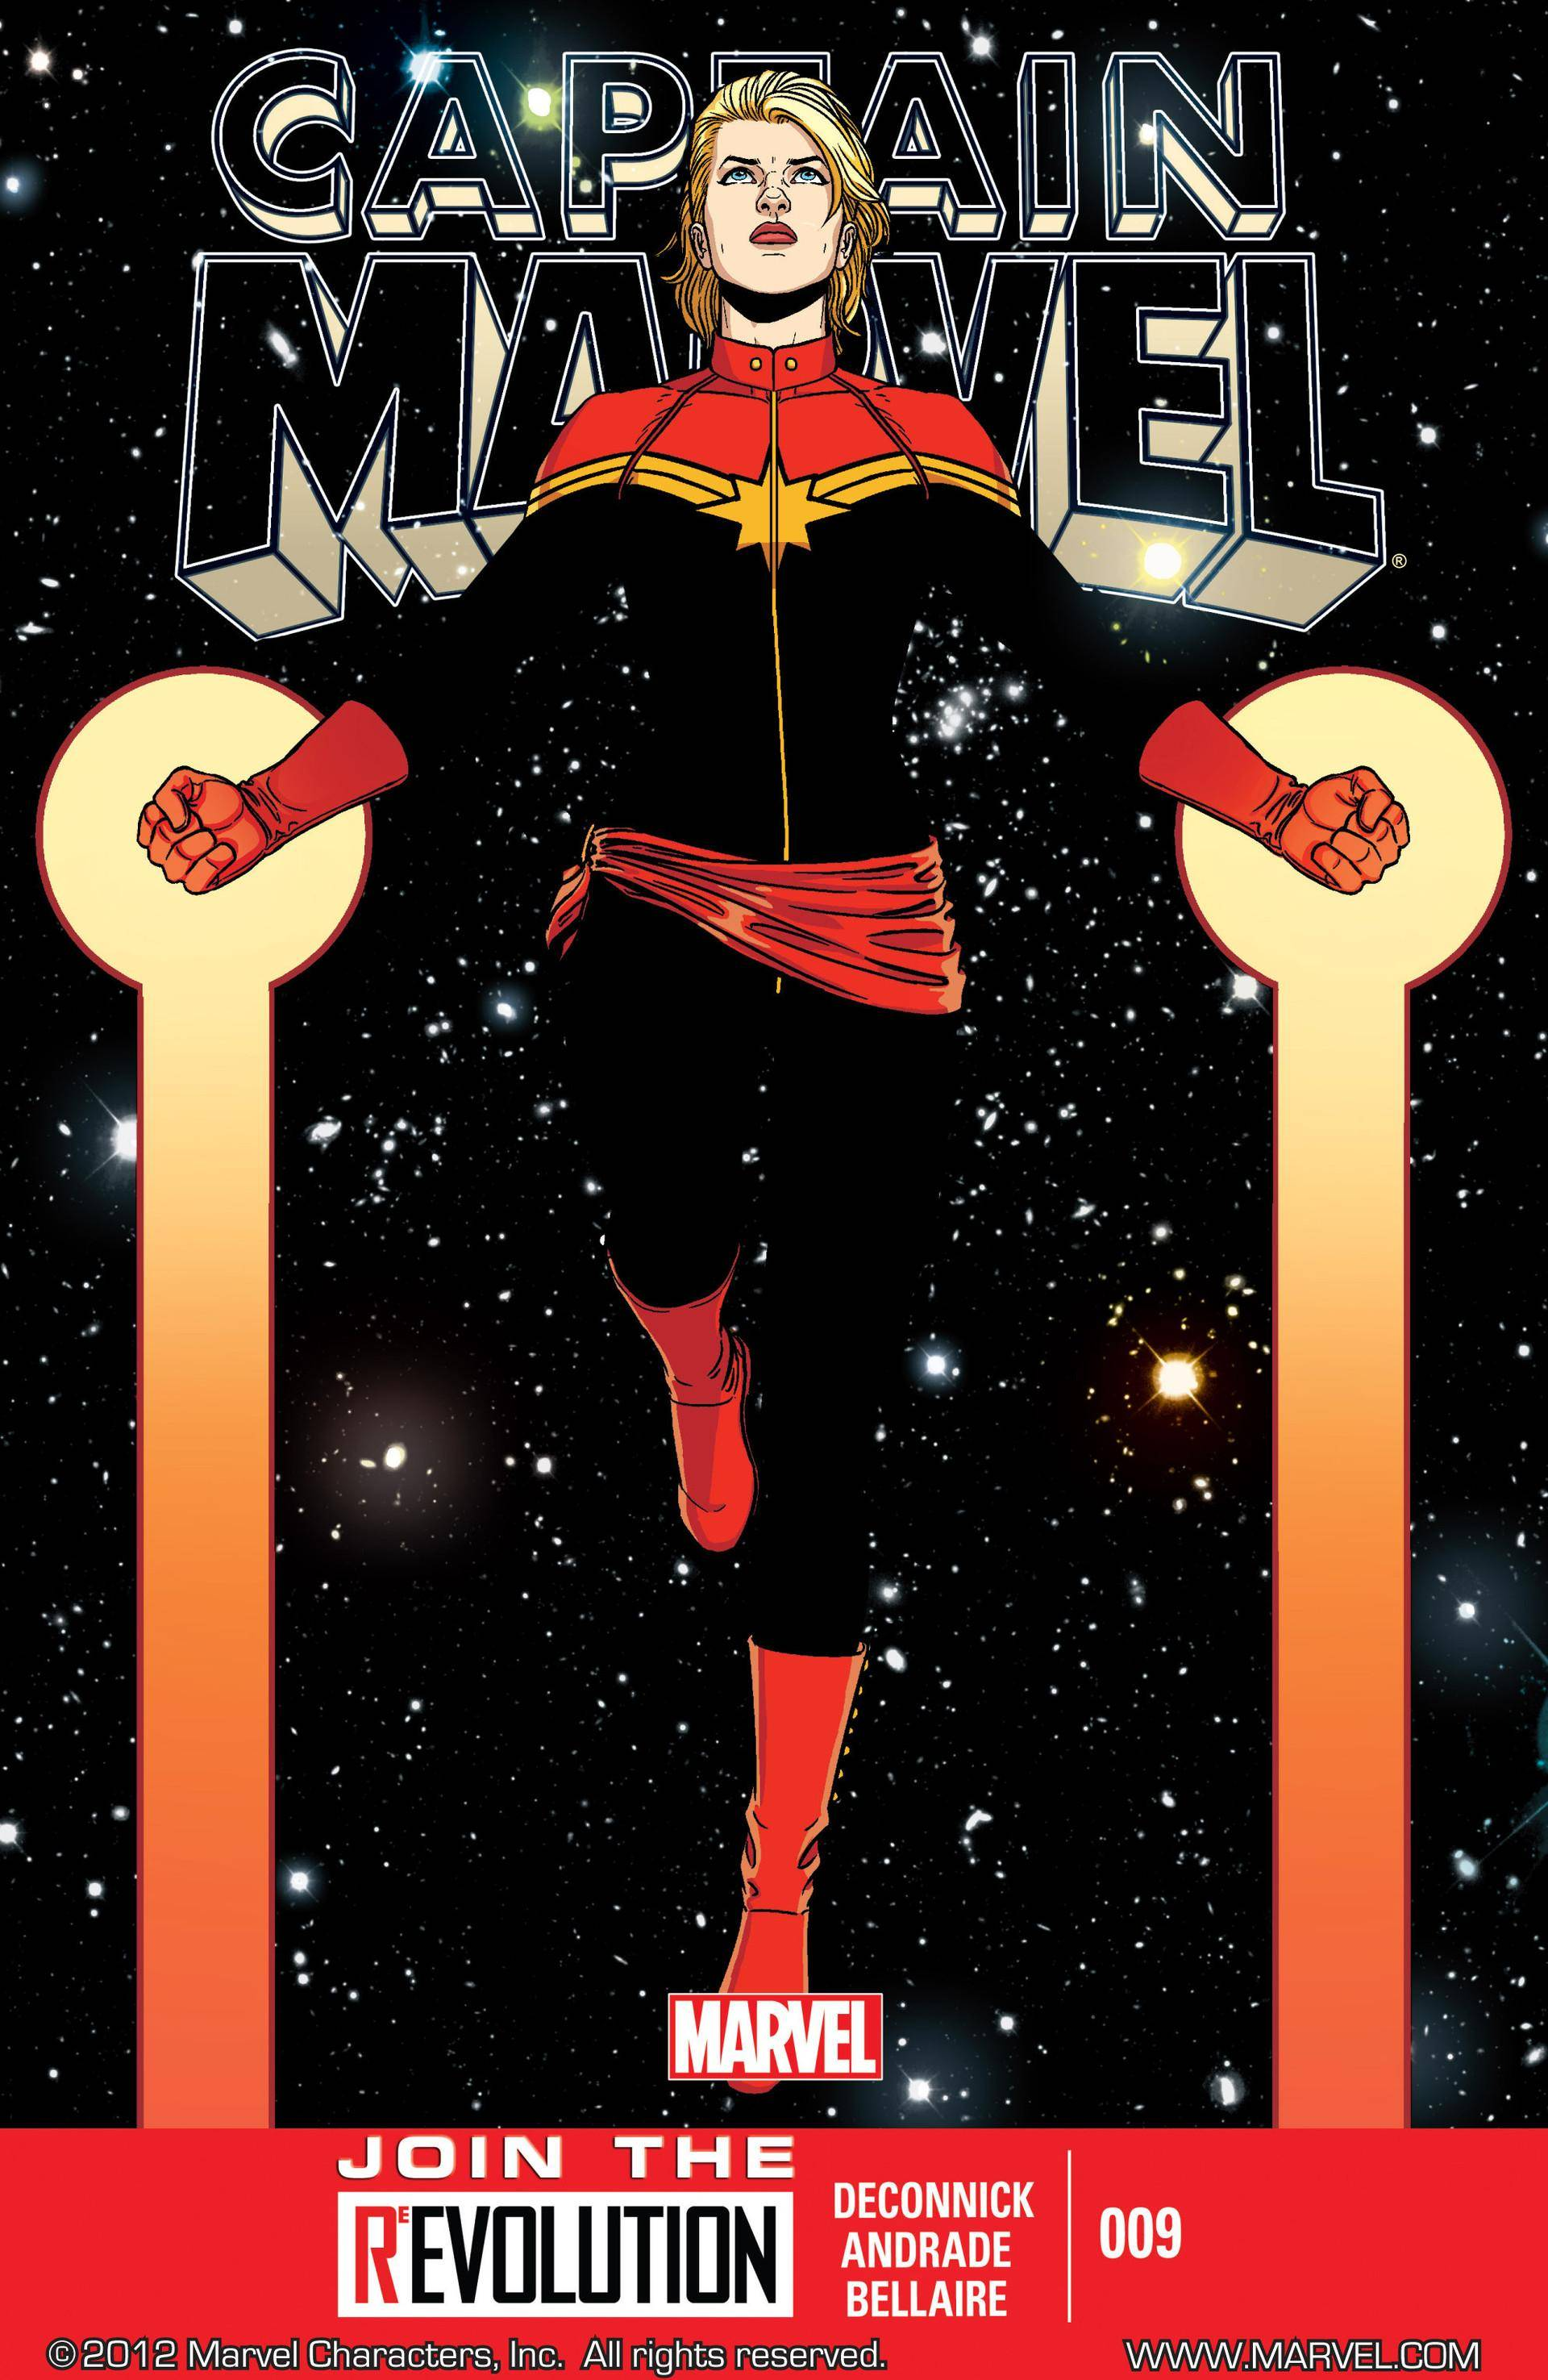 Captain.Marvel.009.2013.Digital.Fawkes-Empire